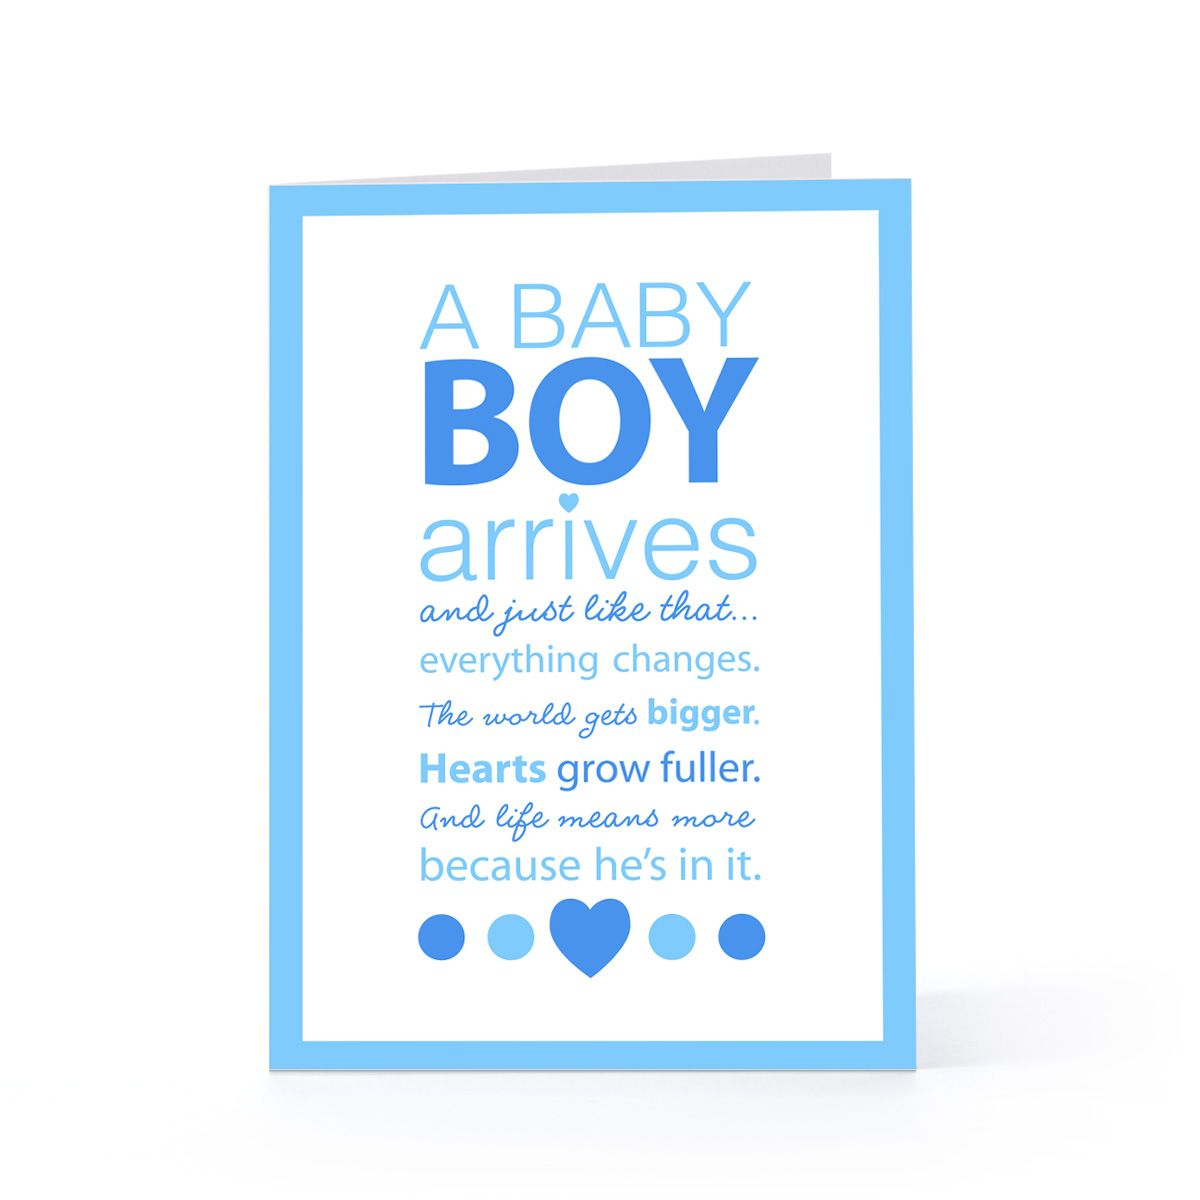 Congratulations baby boy poems images for baby boy quotes and poems congratulations baby boy poems images for baby boy quotes and poems wallpaperg 12001200 m4hsunfo